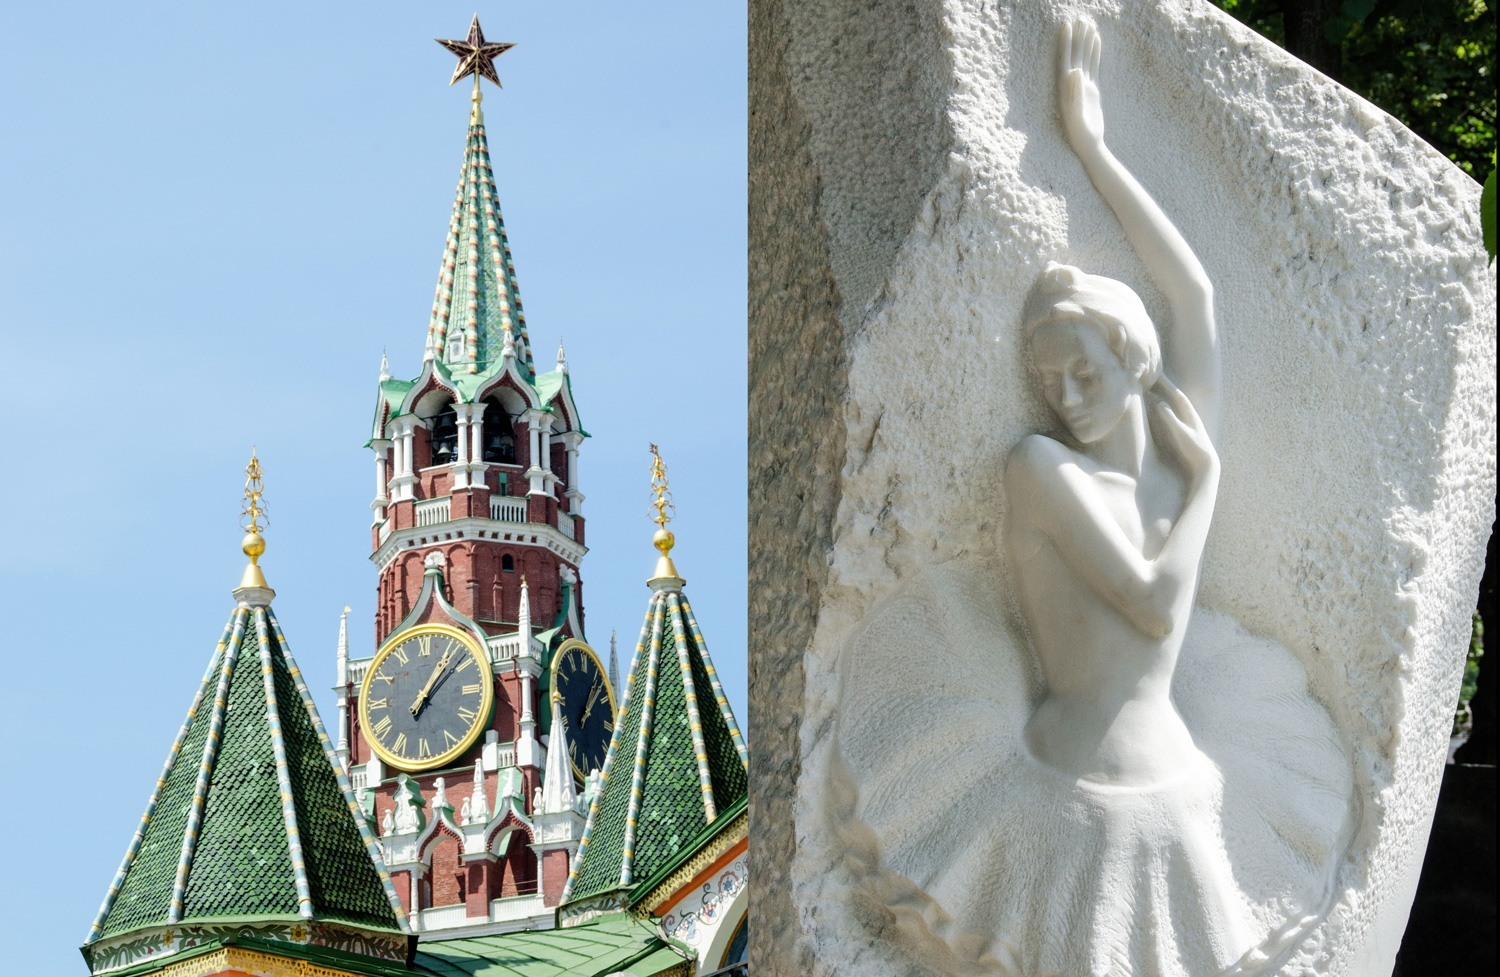 The Kremlin and Novodevichy Cemetary - Small Things in Big Numbers